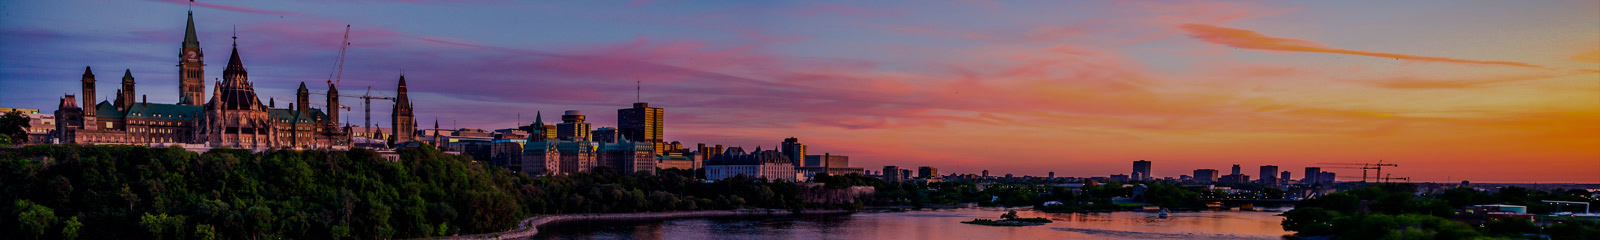 A complete city guide to Ottawa, Ontario and all you need to know. From education systems, living costs, public transportation, to the top 10 tourist destination in Ottawa. Discover why so many people choose to live in Canada!